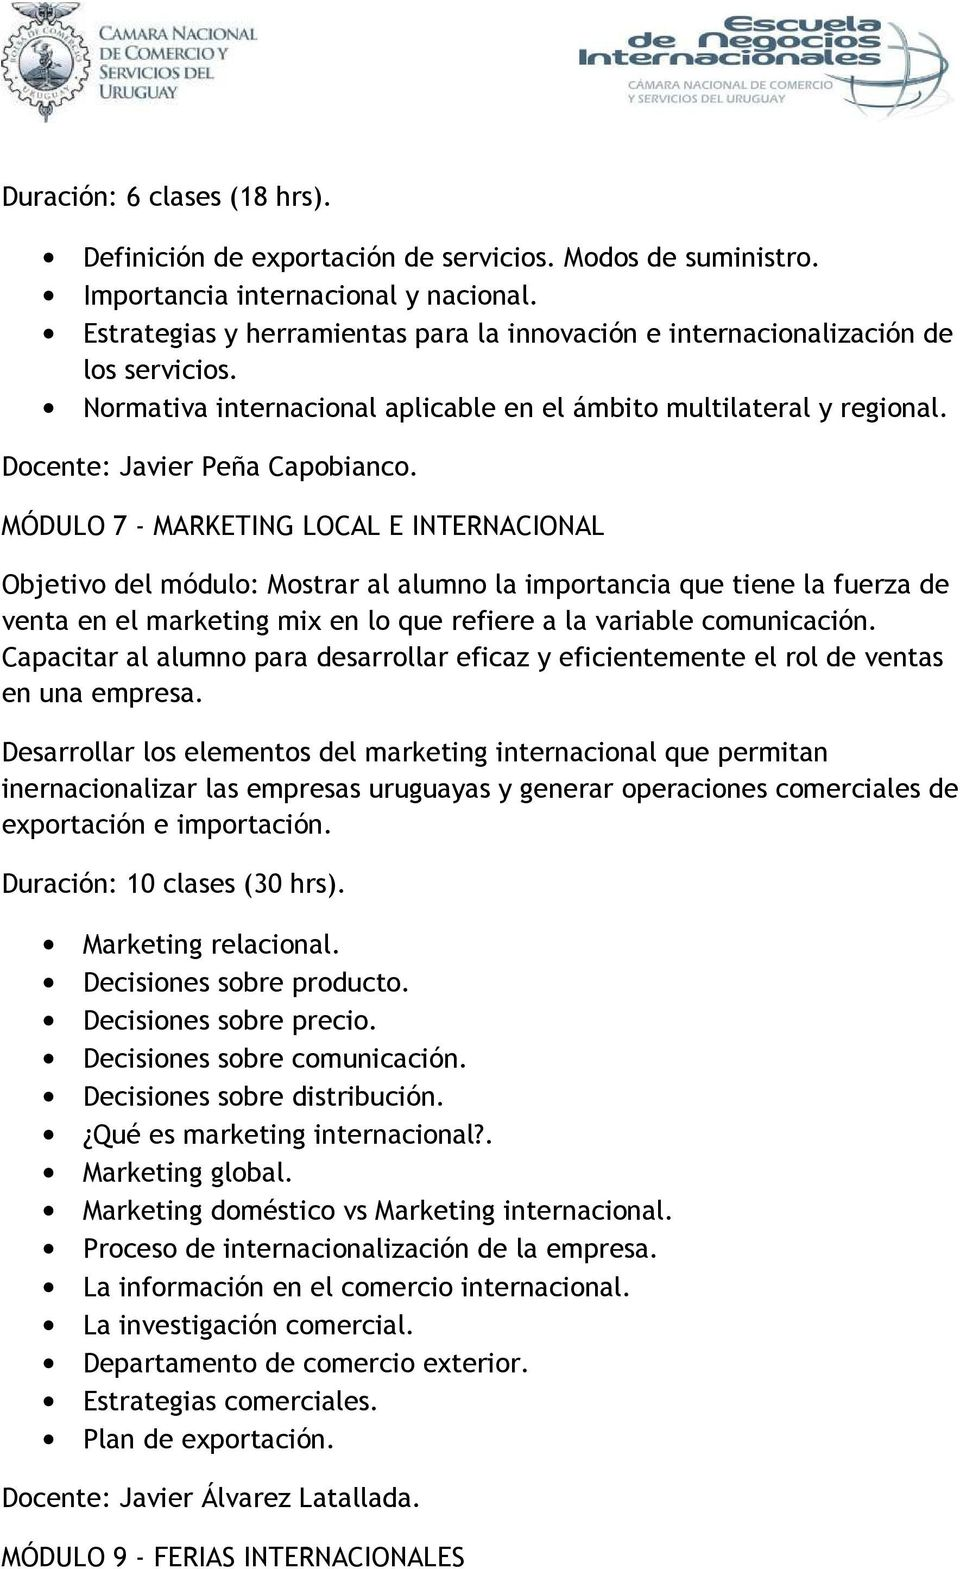 MÓDULO 7 - MARKETING LOCAL E INTERNACIONAL Objetivo del módulo: Mostrar al alumno la importancia que tiene la fuerza de venta en el marketing mix en lo que refiere a la variable comunicación.